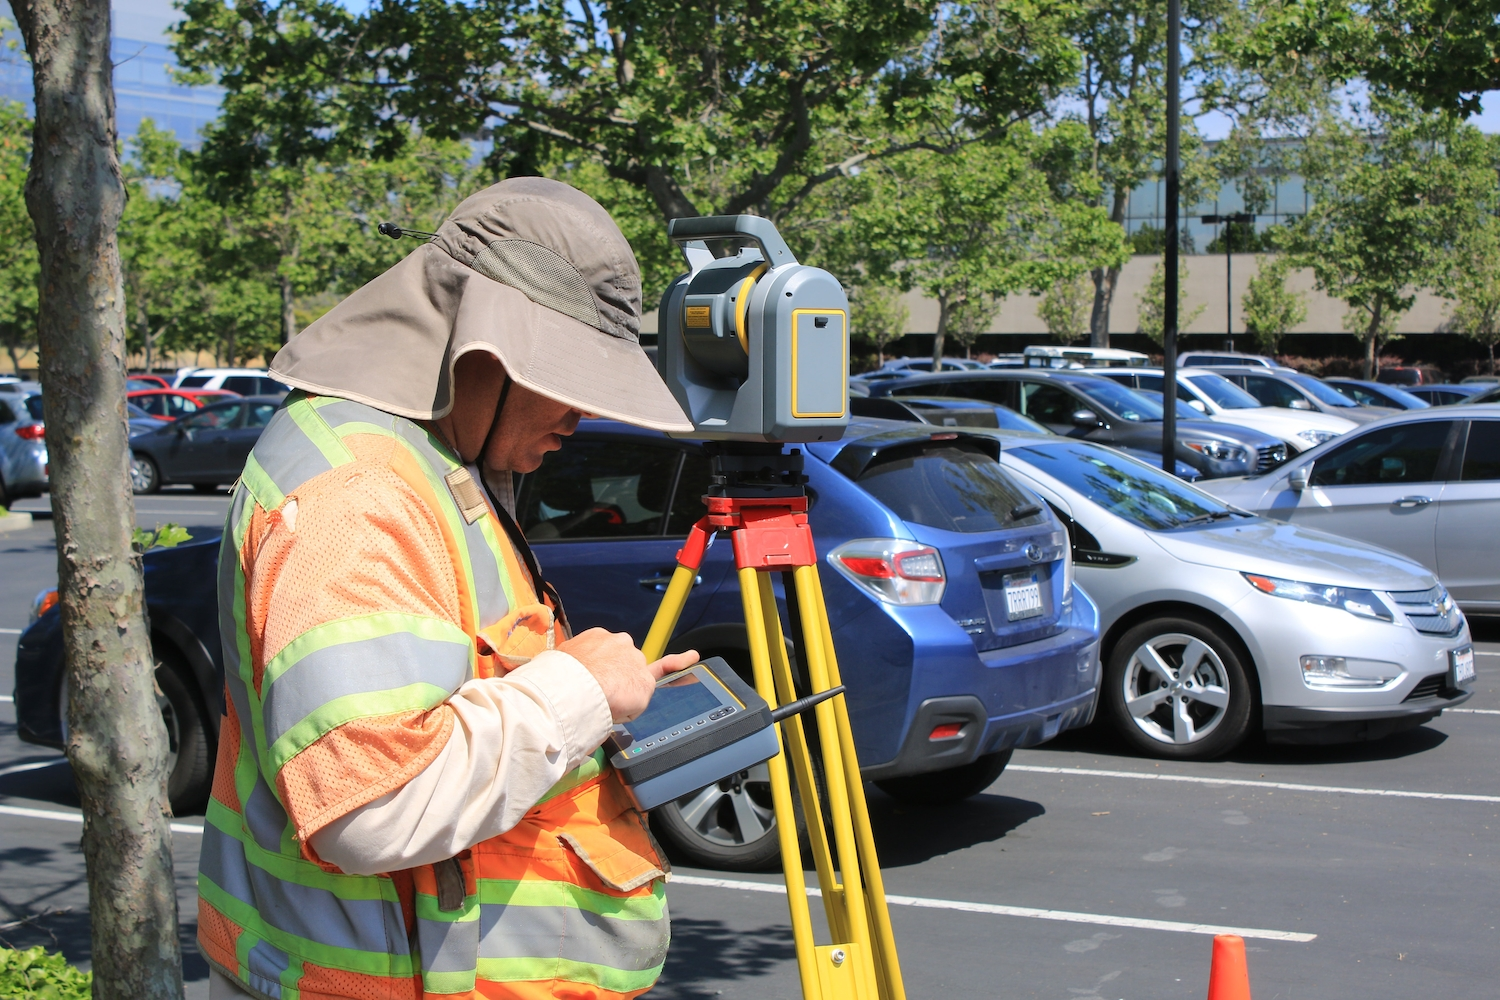 Guy in car park looking at land survey equipment